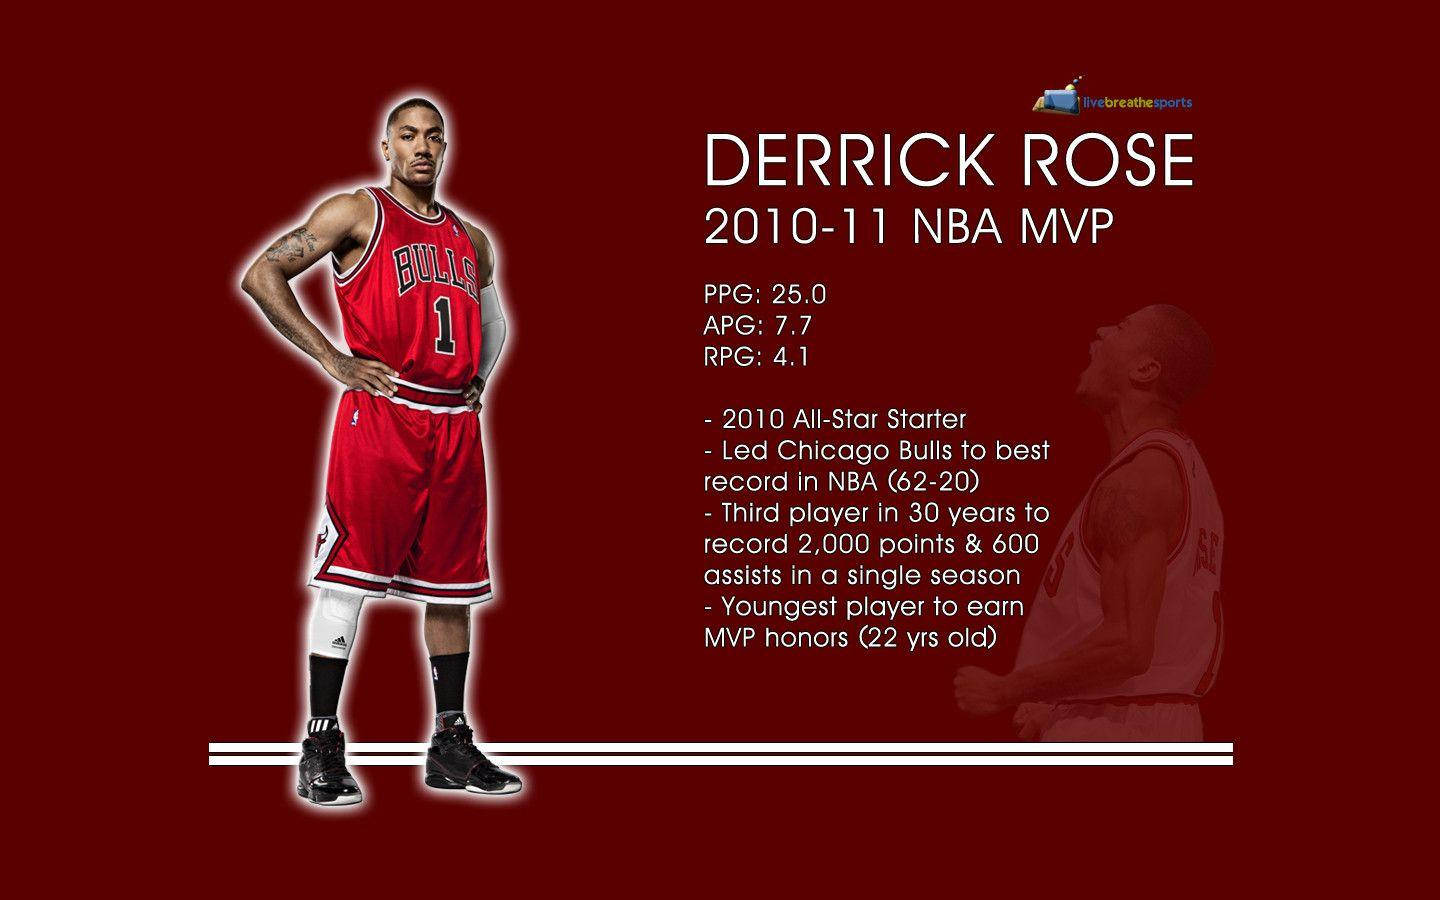 Derrick Rose Desktop Wallpapers 1440x900